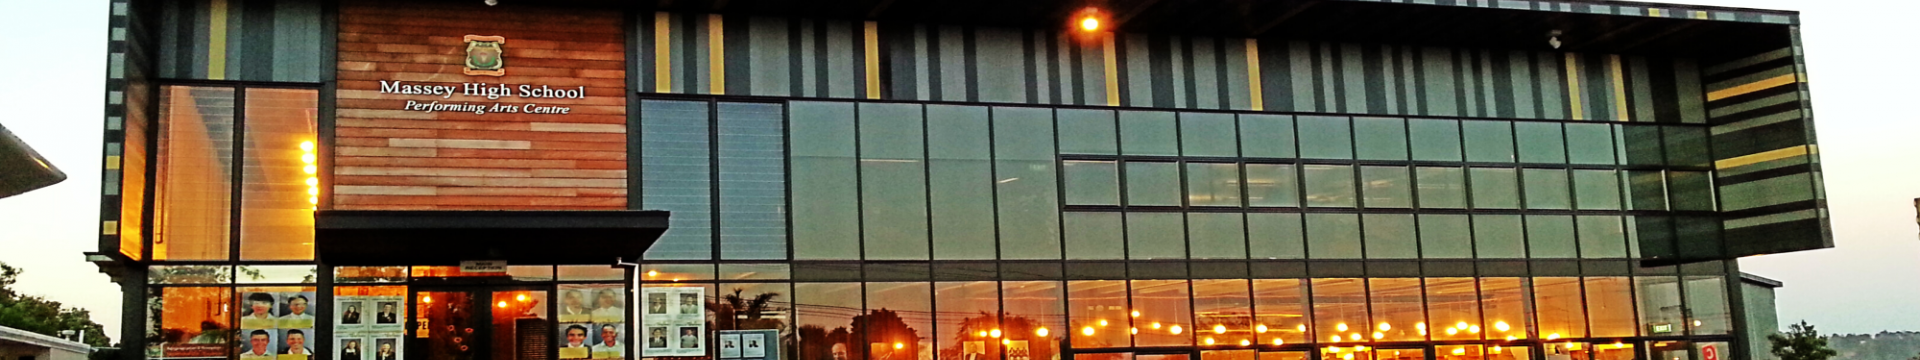 School sliders MHS